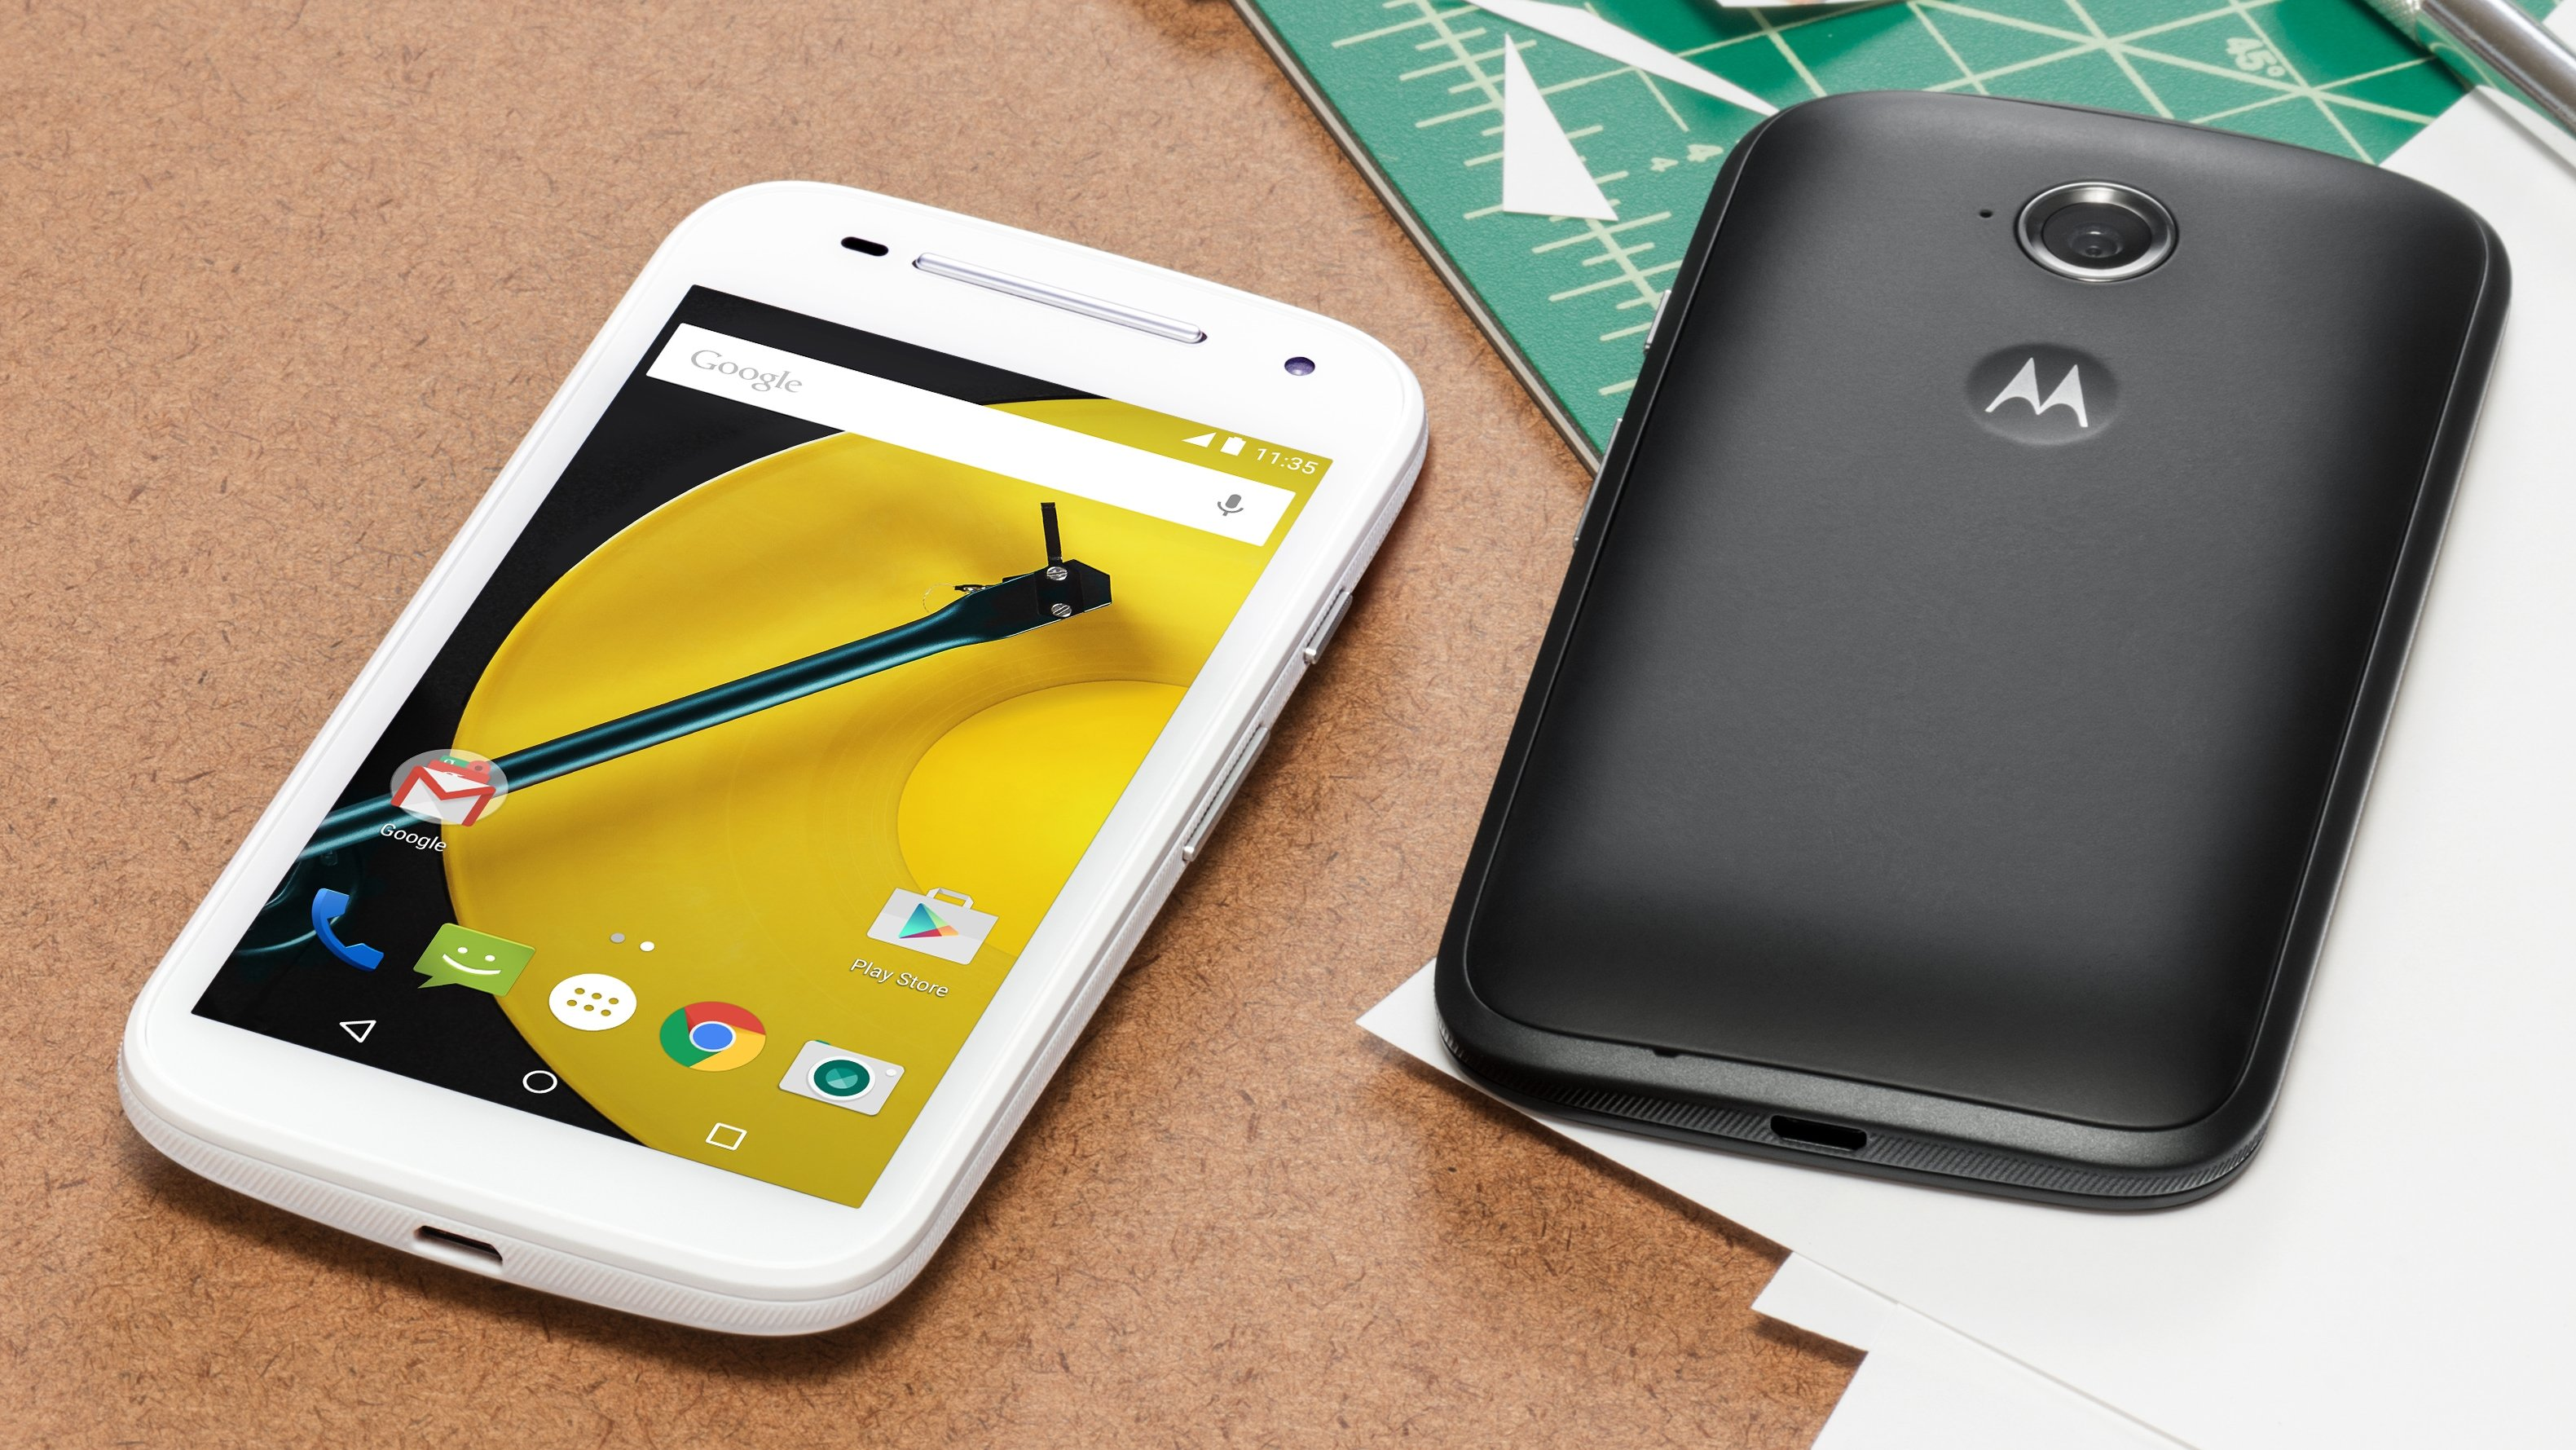 edfff3f116e Motorola Moto E 2nd Gen review: Great value and performance at a budget |  Expert Reviews